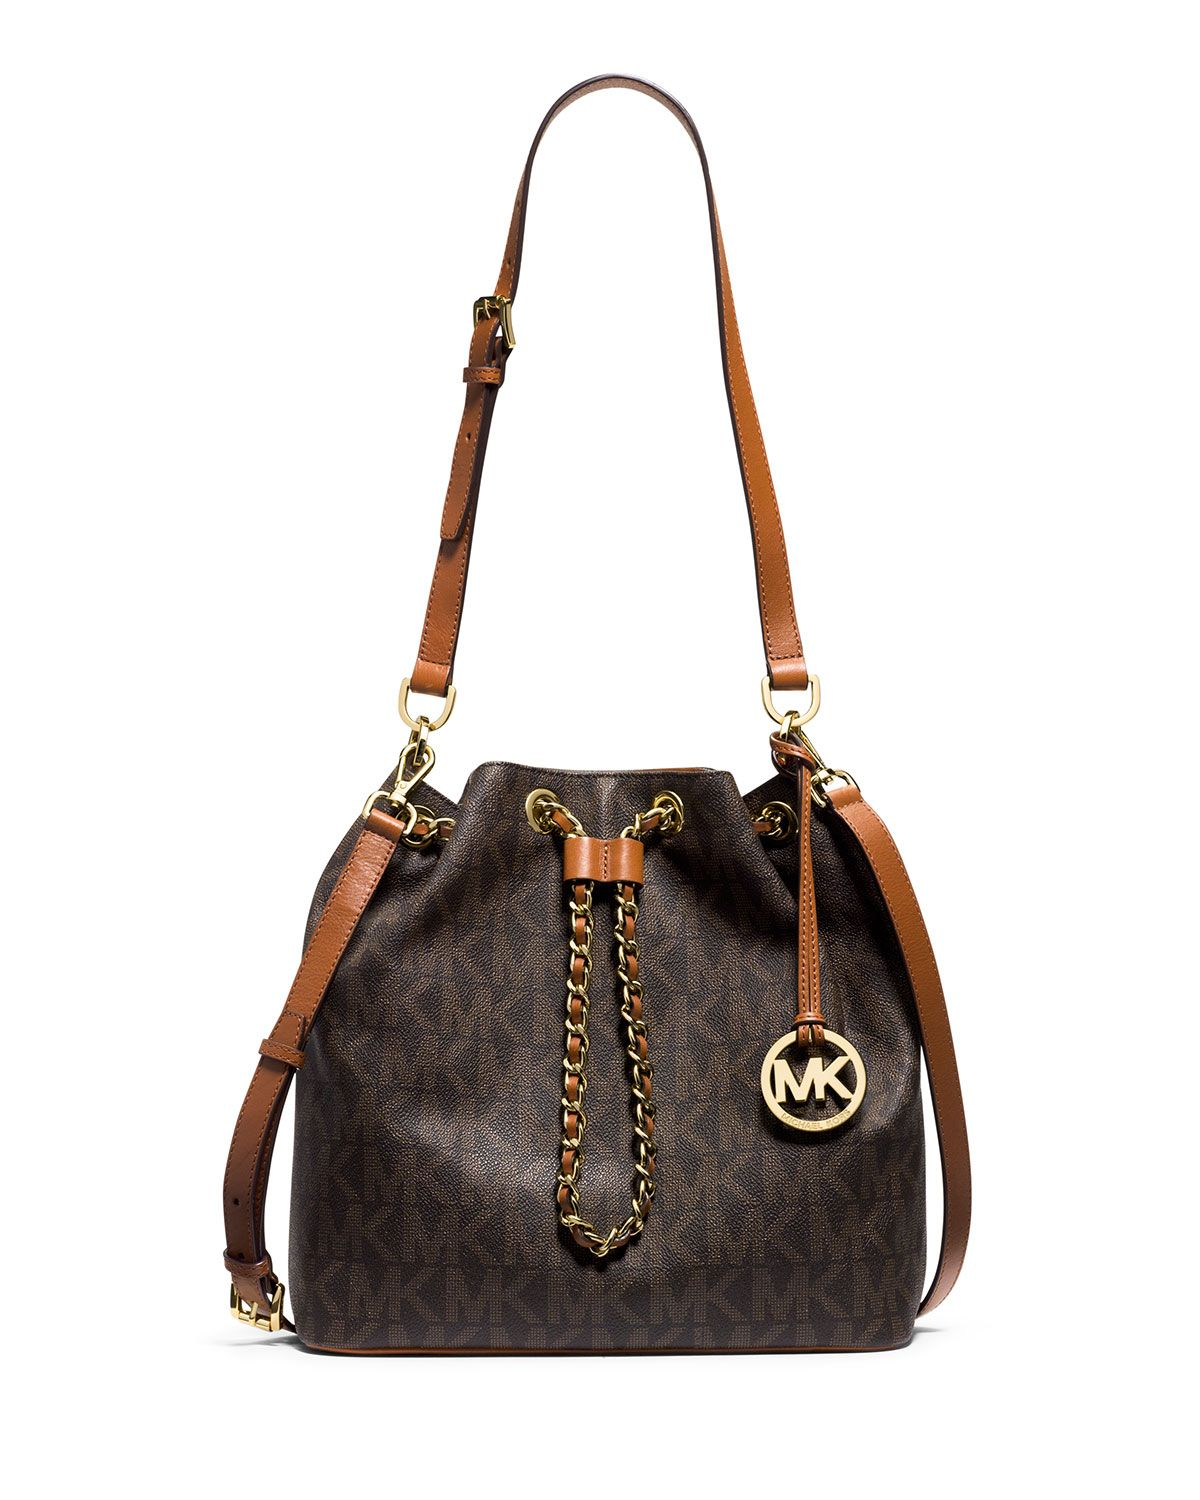 MICHAEL Michael Kors Signature Large Jet Set Messenger Bag #Dillards |  wardrobe | Pinterest | Michael kors, Jet set and Dillards